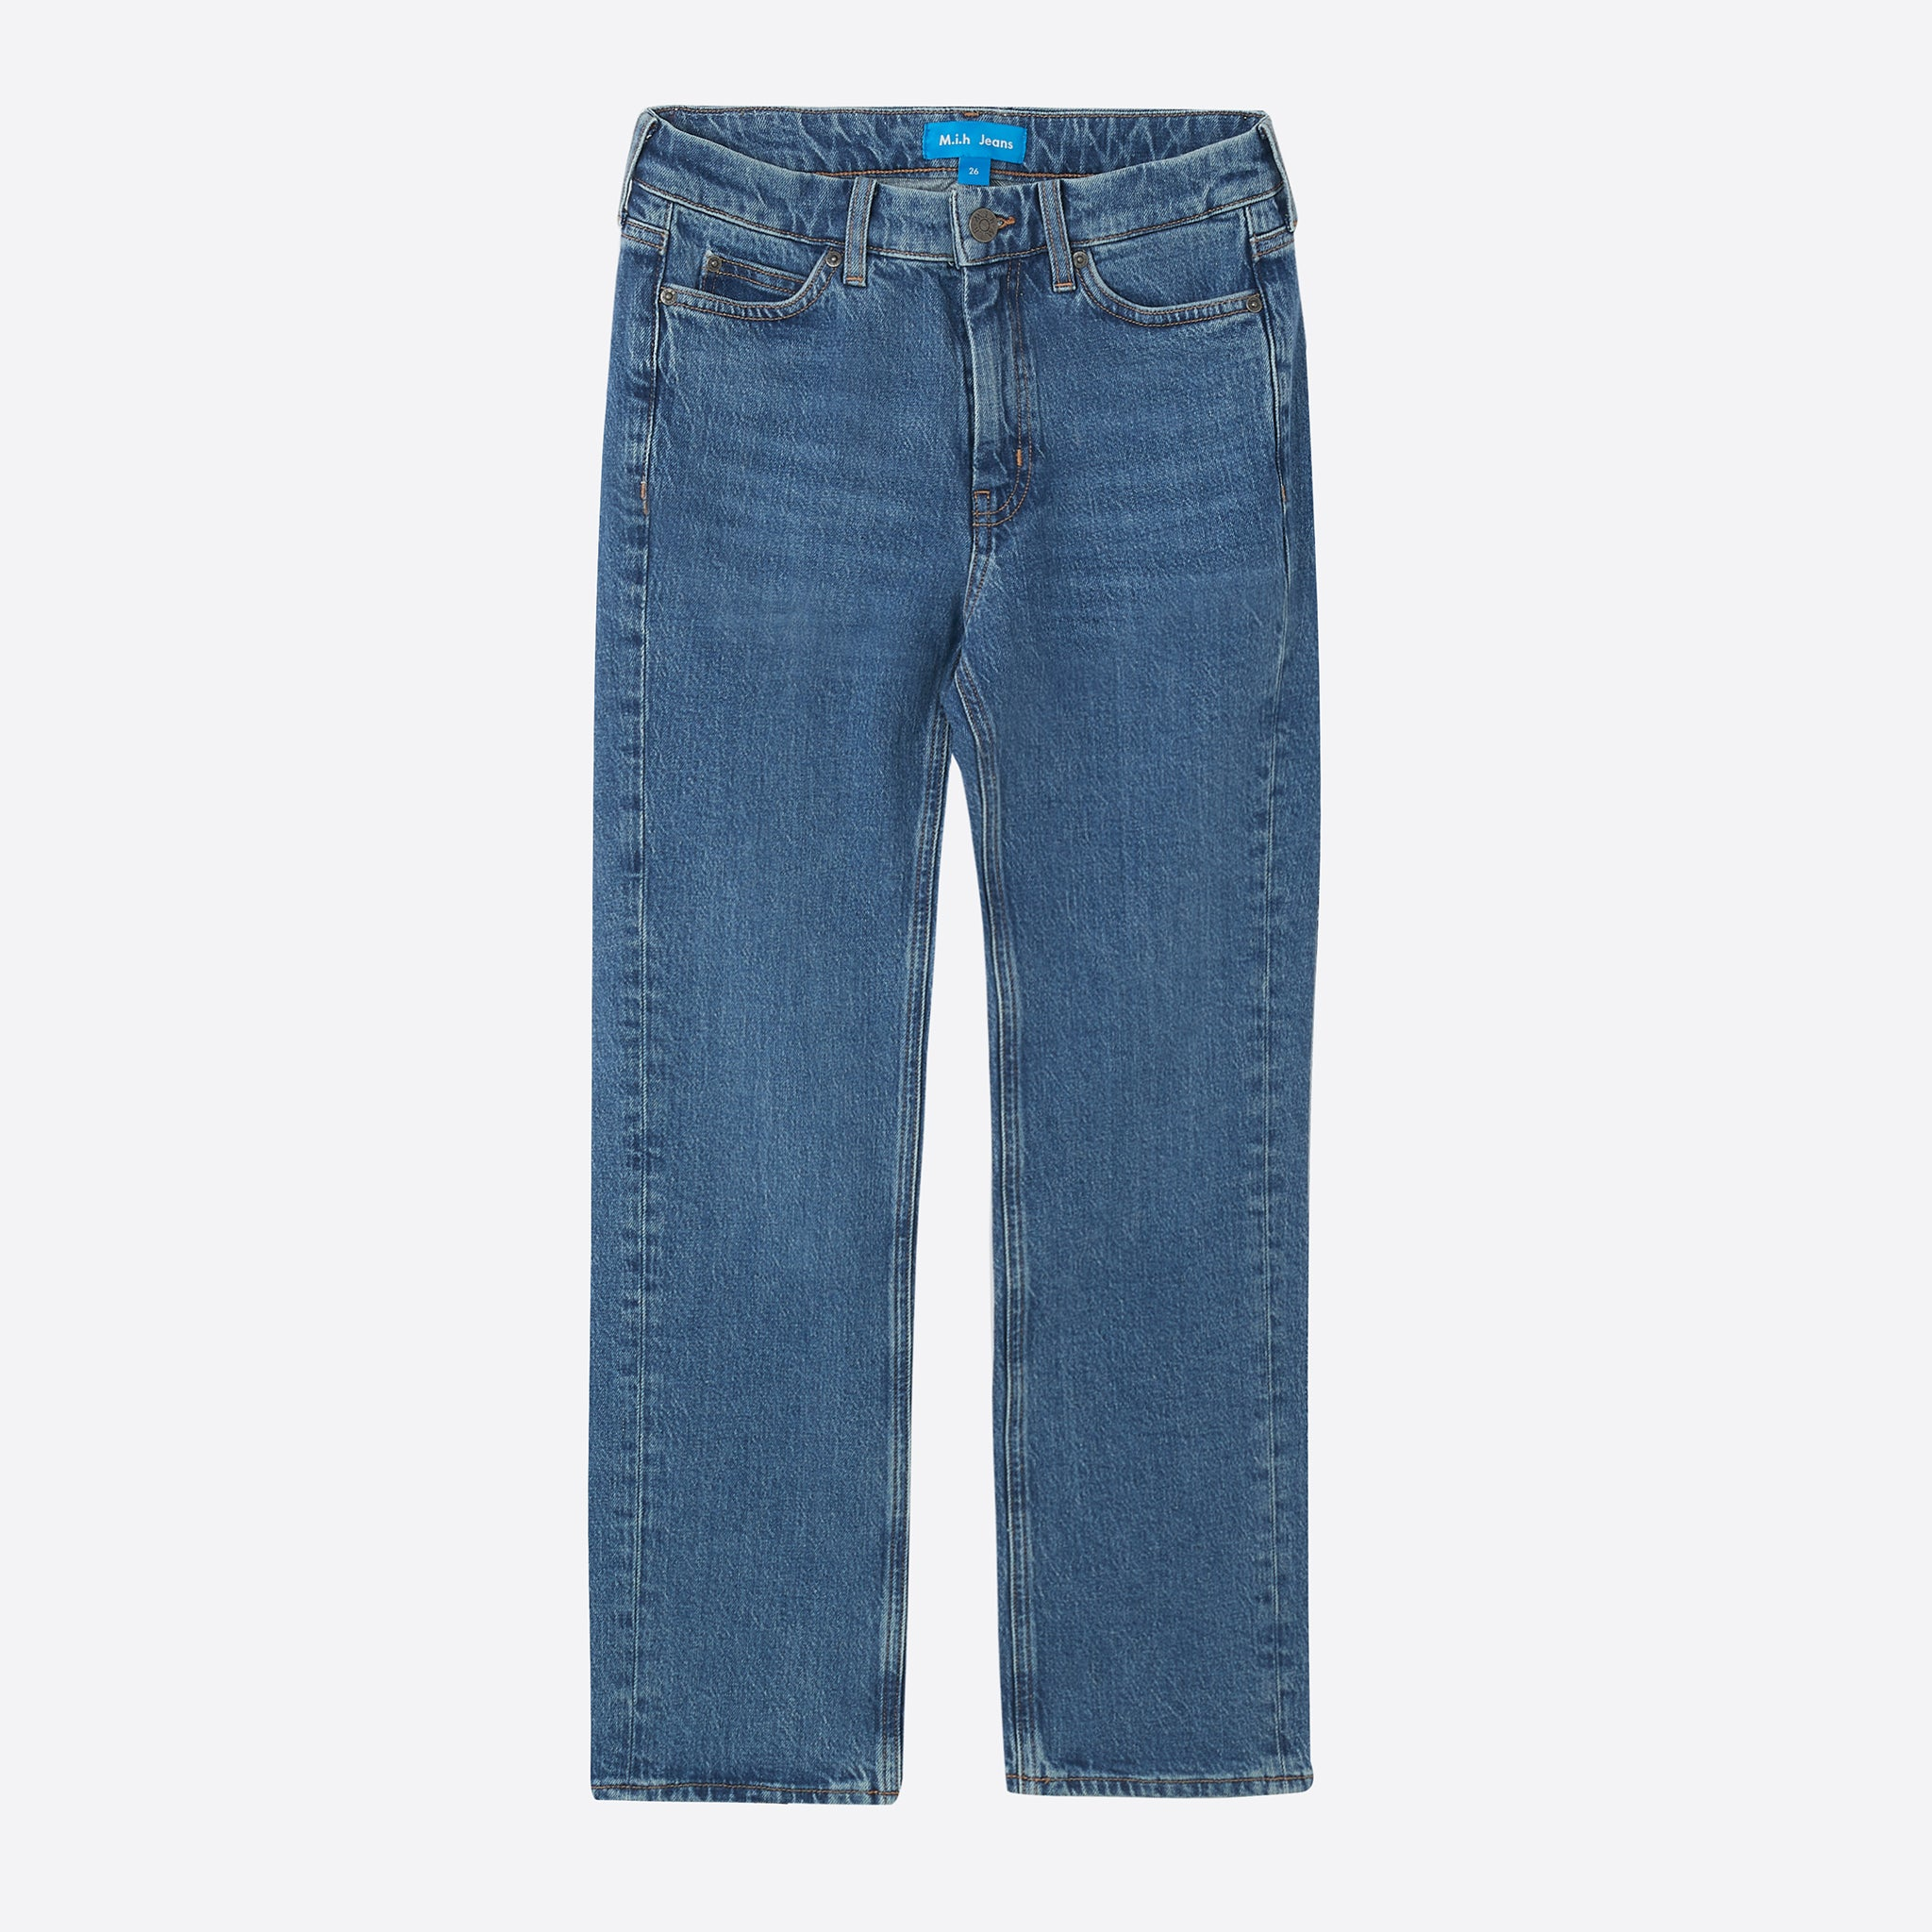 M.i.h Jeans Daily Crop Jeans in Calico